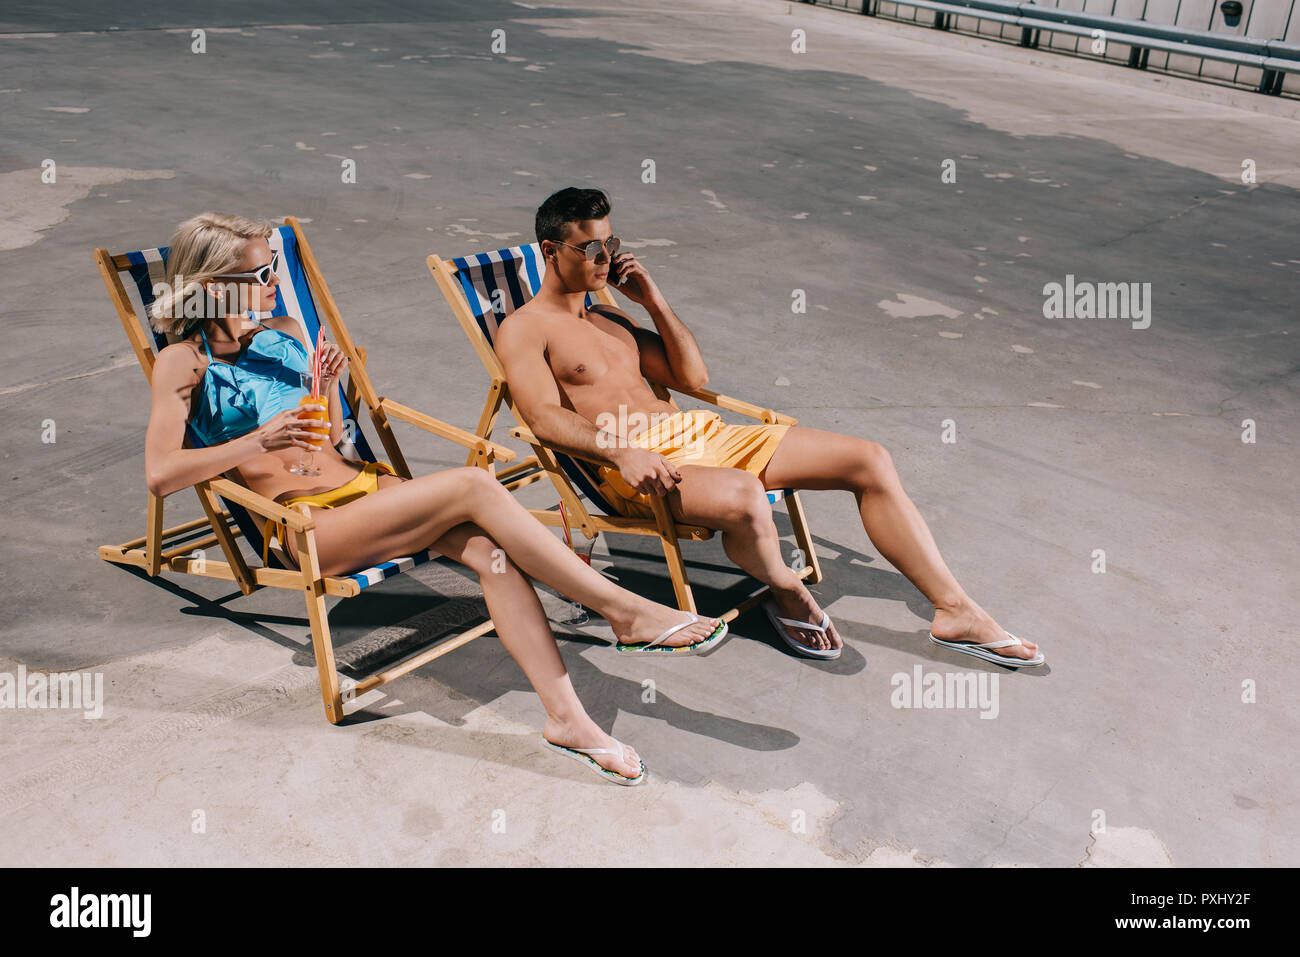 high angle view of young couple relaxing on sun loungers relaxing on parking - Stock Image